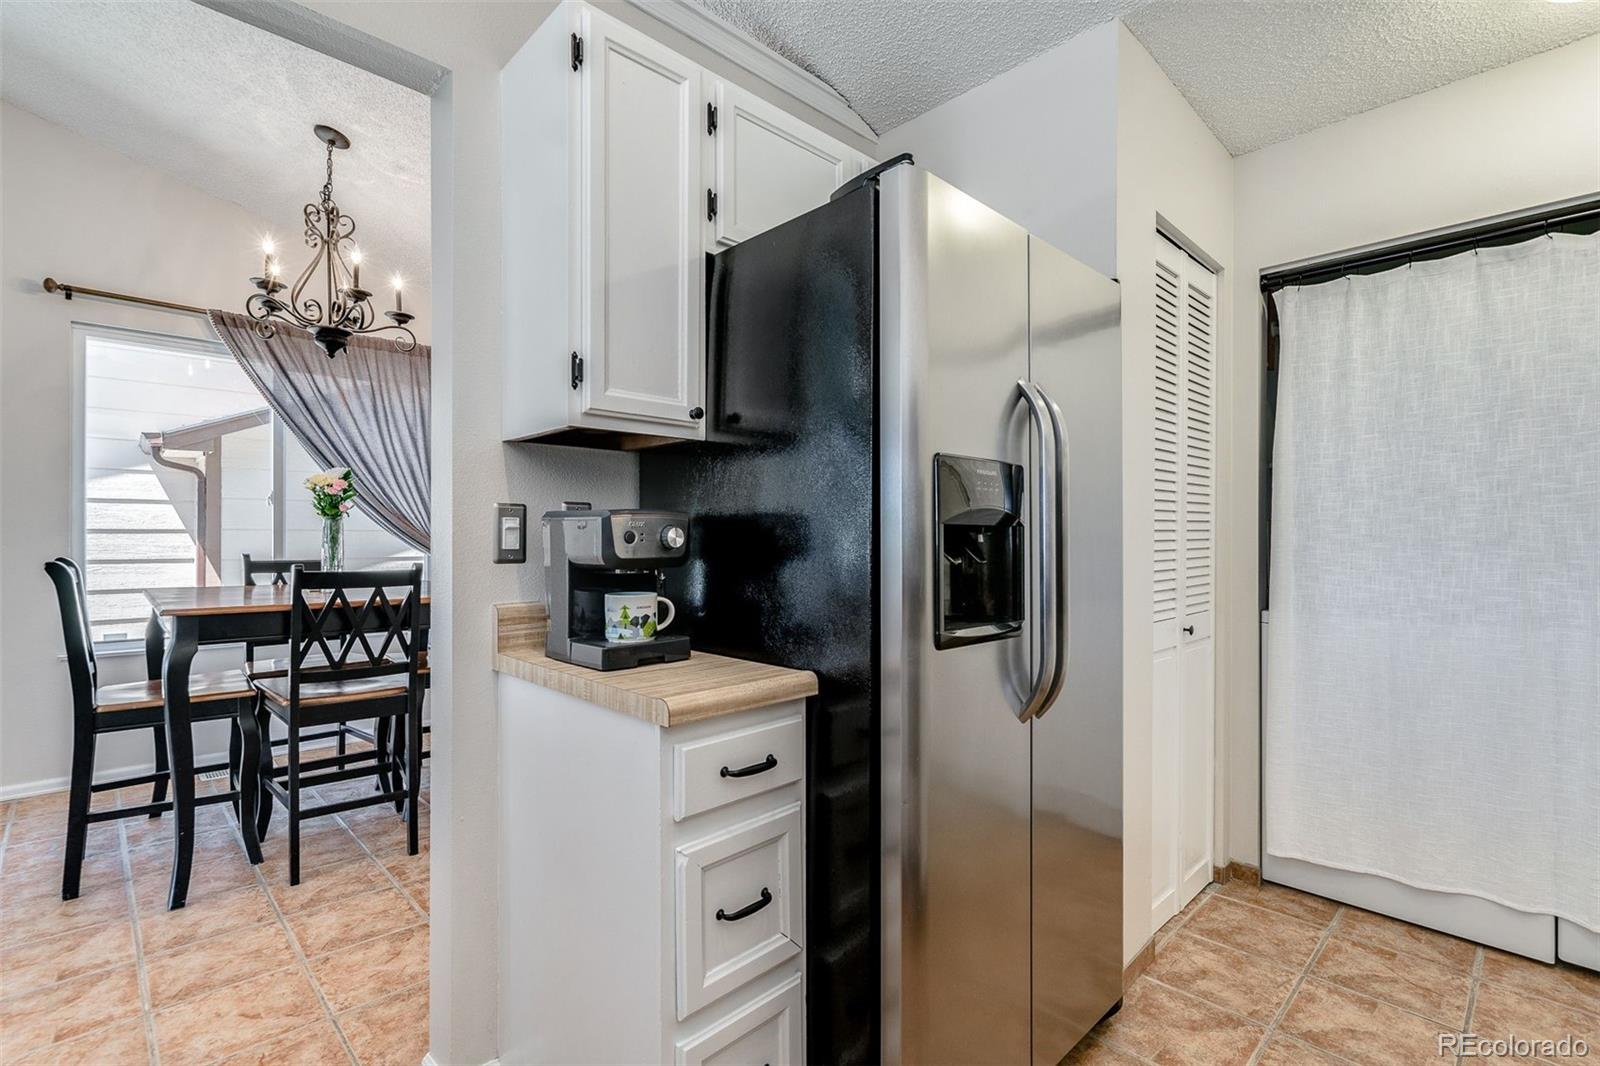 MLS# 3847207 - 29 - 6565 Mohican Drive, Colorado Springs, CO 80915